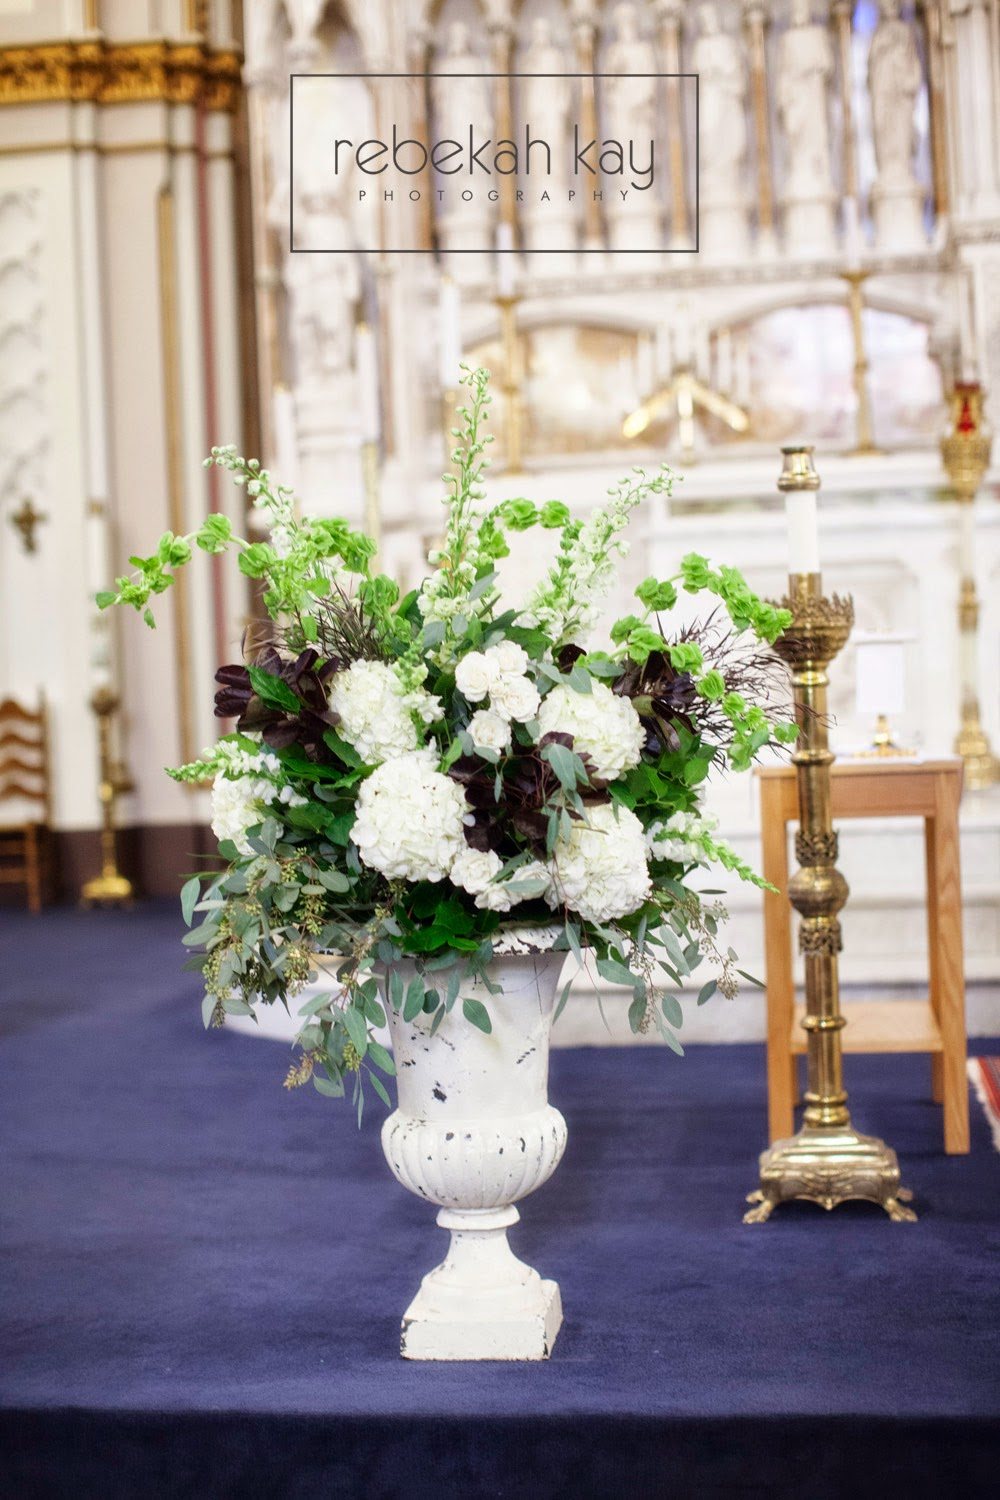 les fleurs : rebekah kay photography : white garden urn : ceremony arrangements : white hydrangea : white and green